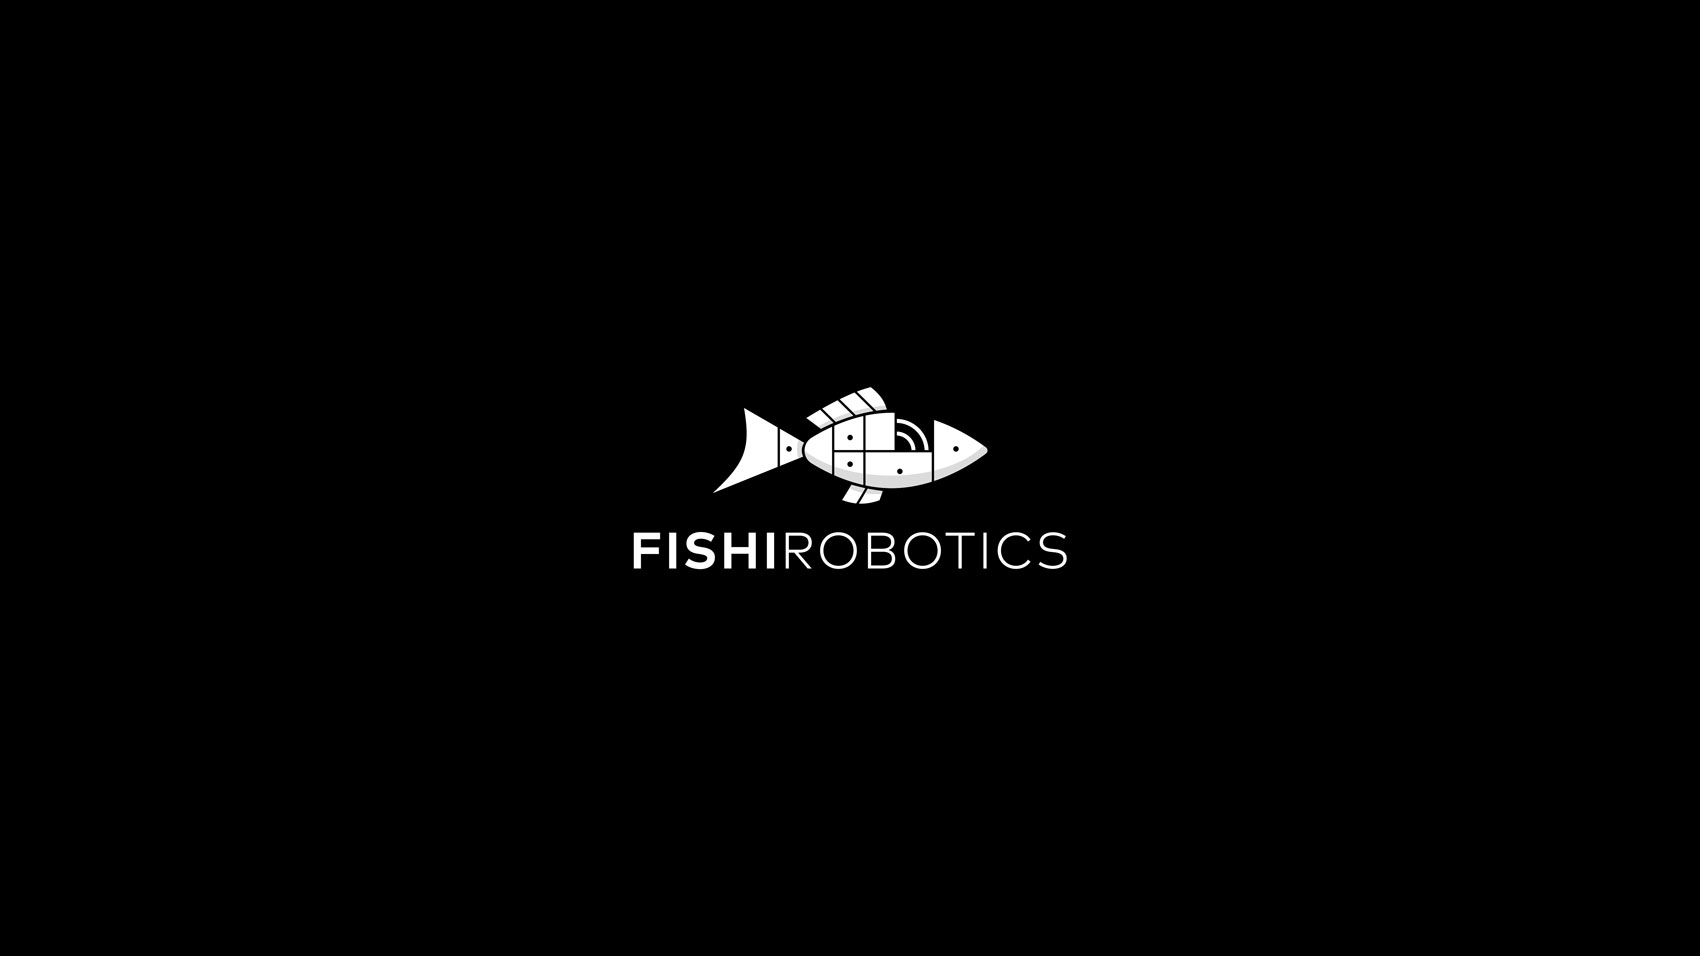 Fishi Robotics logo design